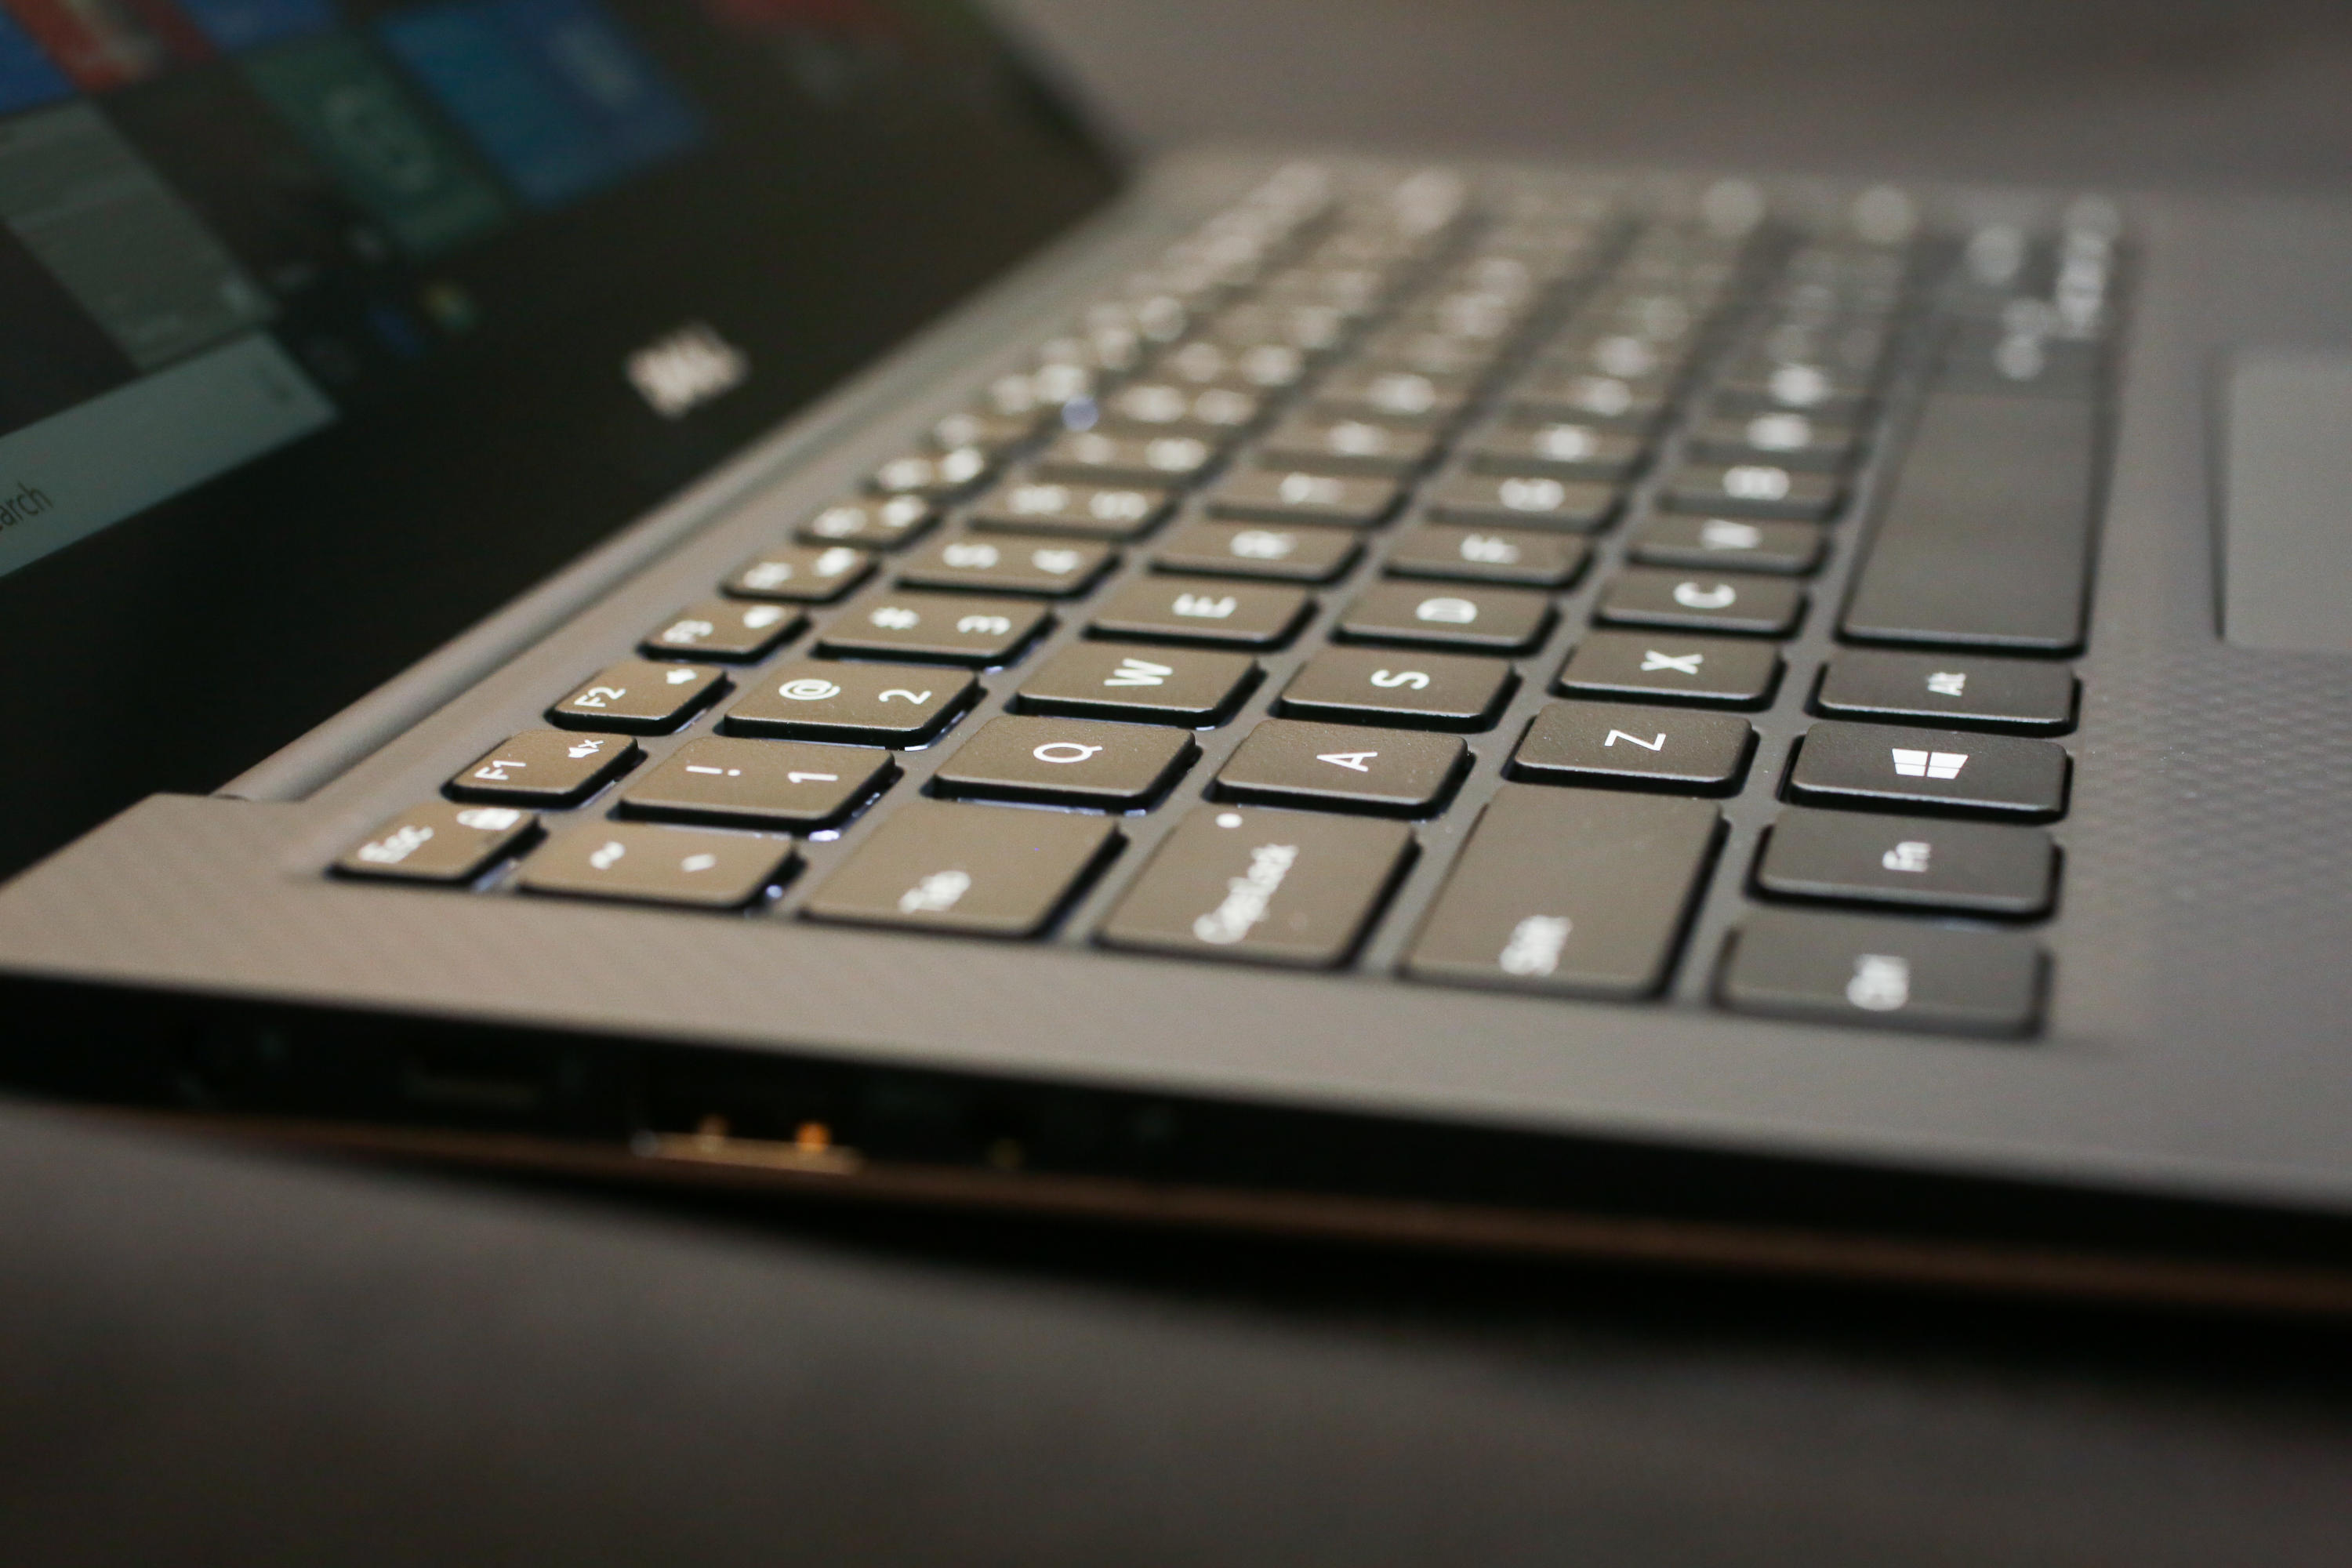 Dell XPS 13 (late 2017)